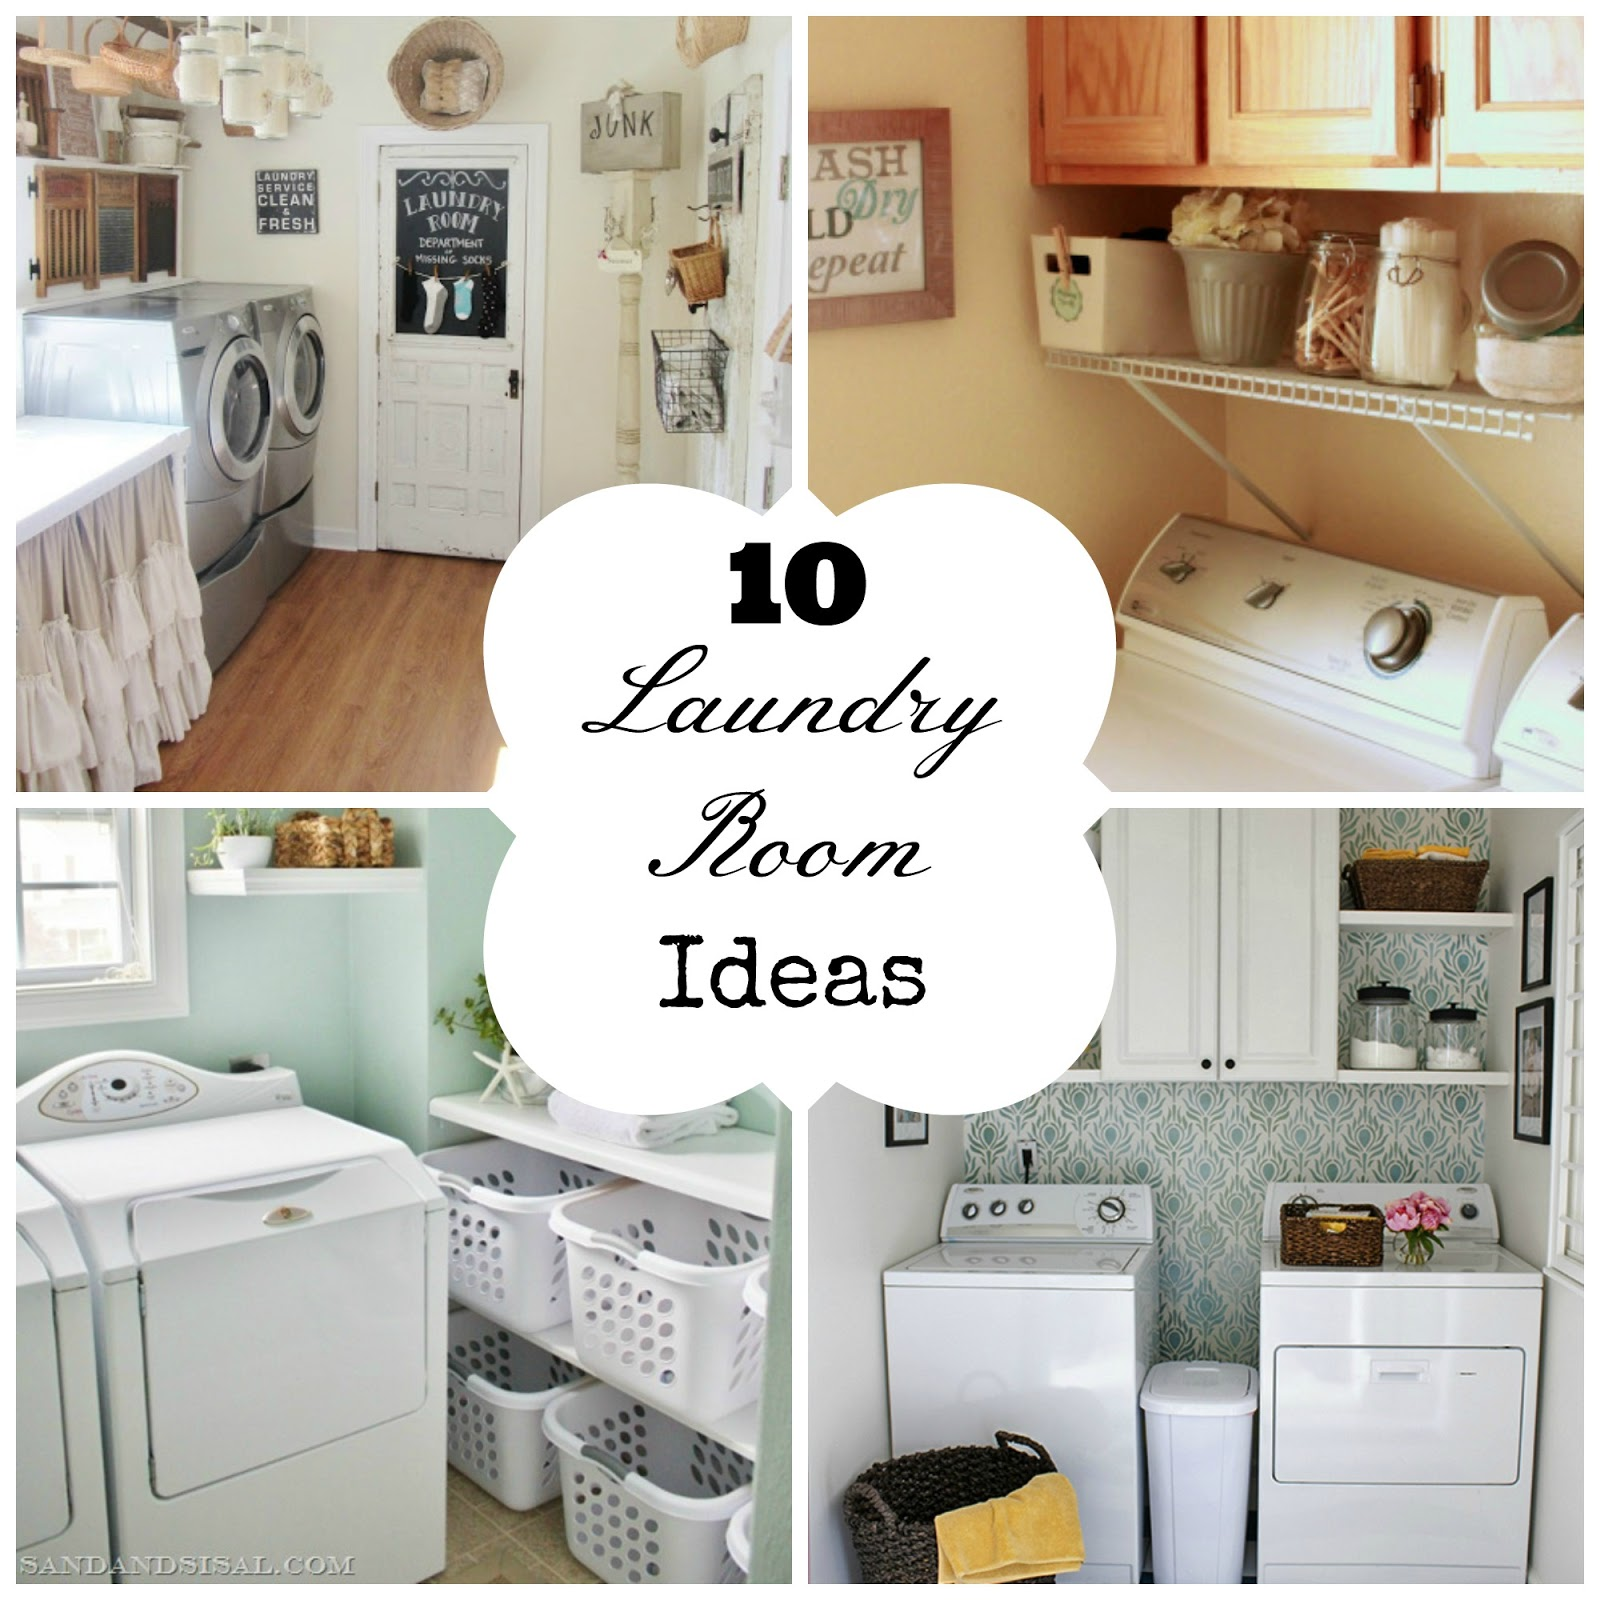 perfect 10 laundry room ideasfun home things